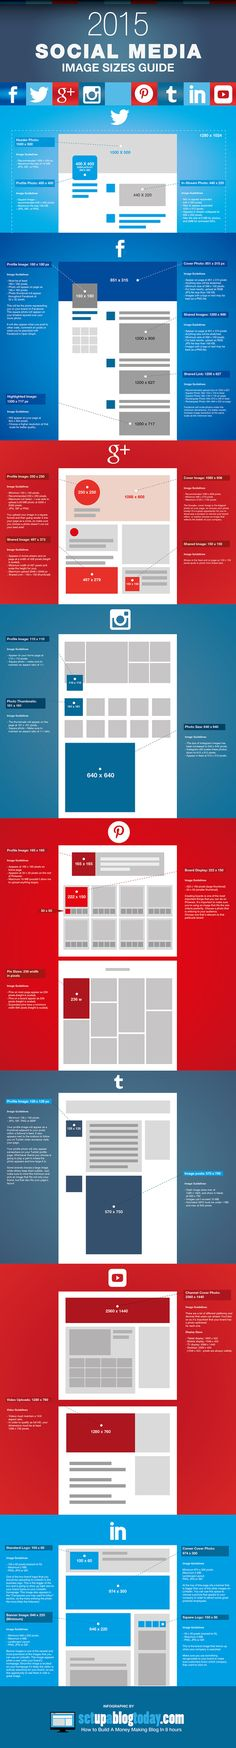 Complete Social Media Image Size Guide [INFOGRAPHIC]